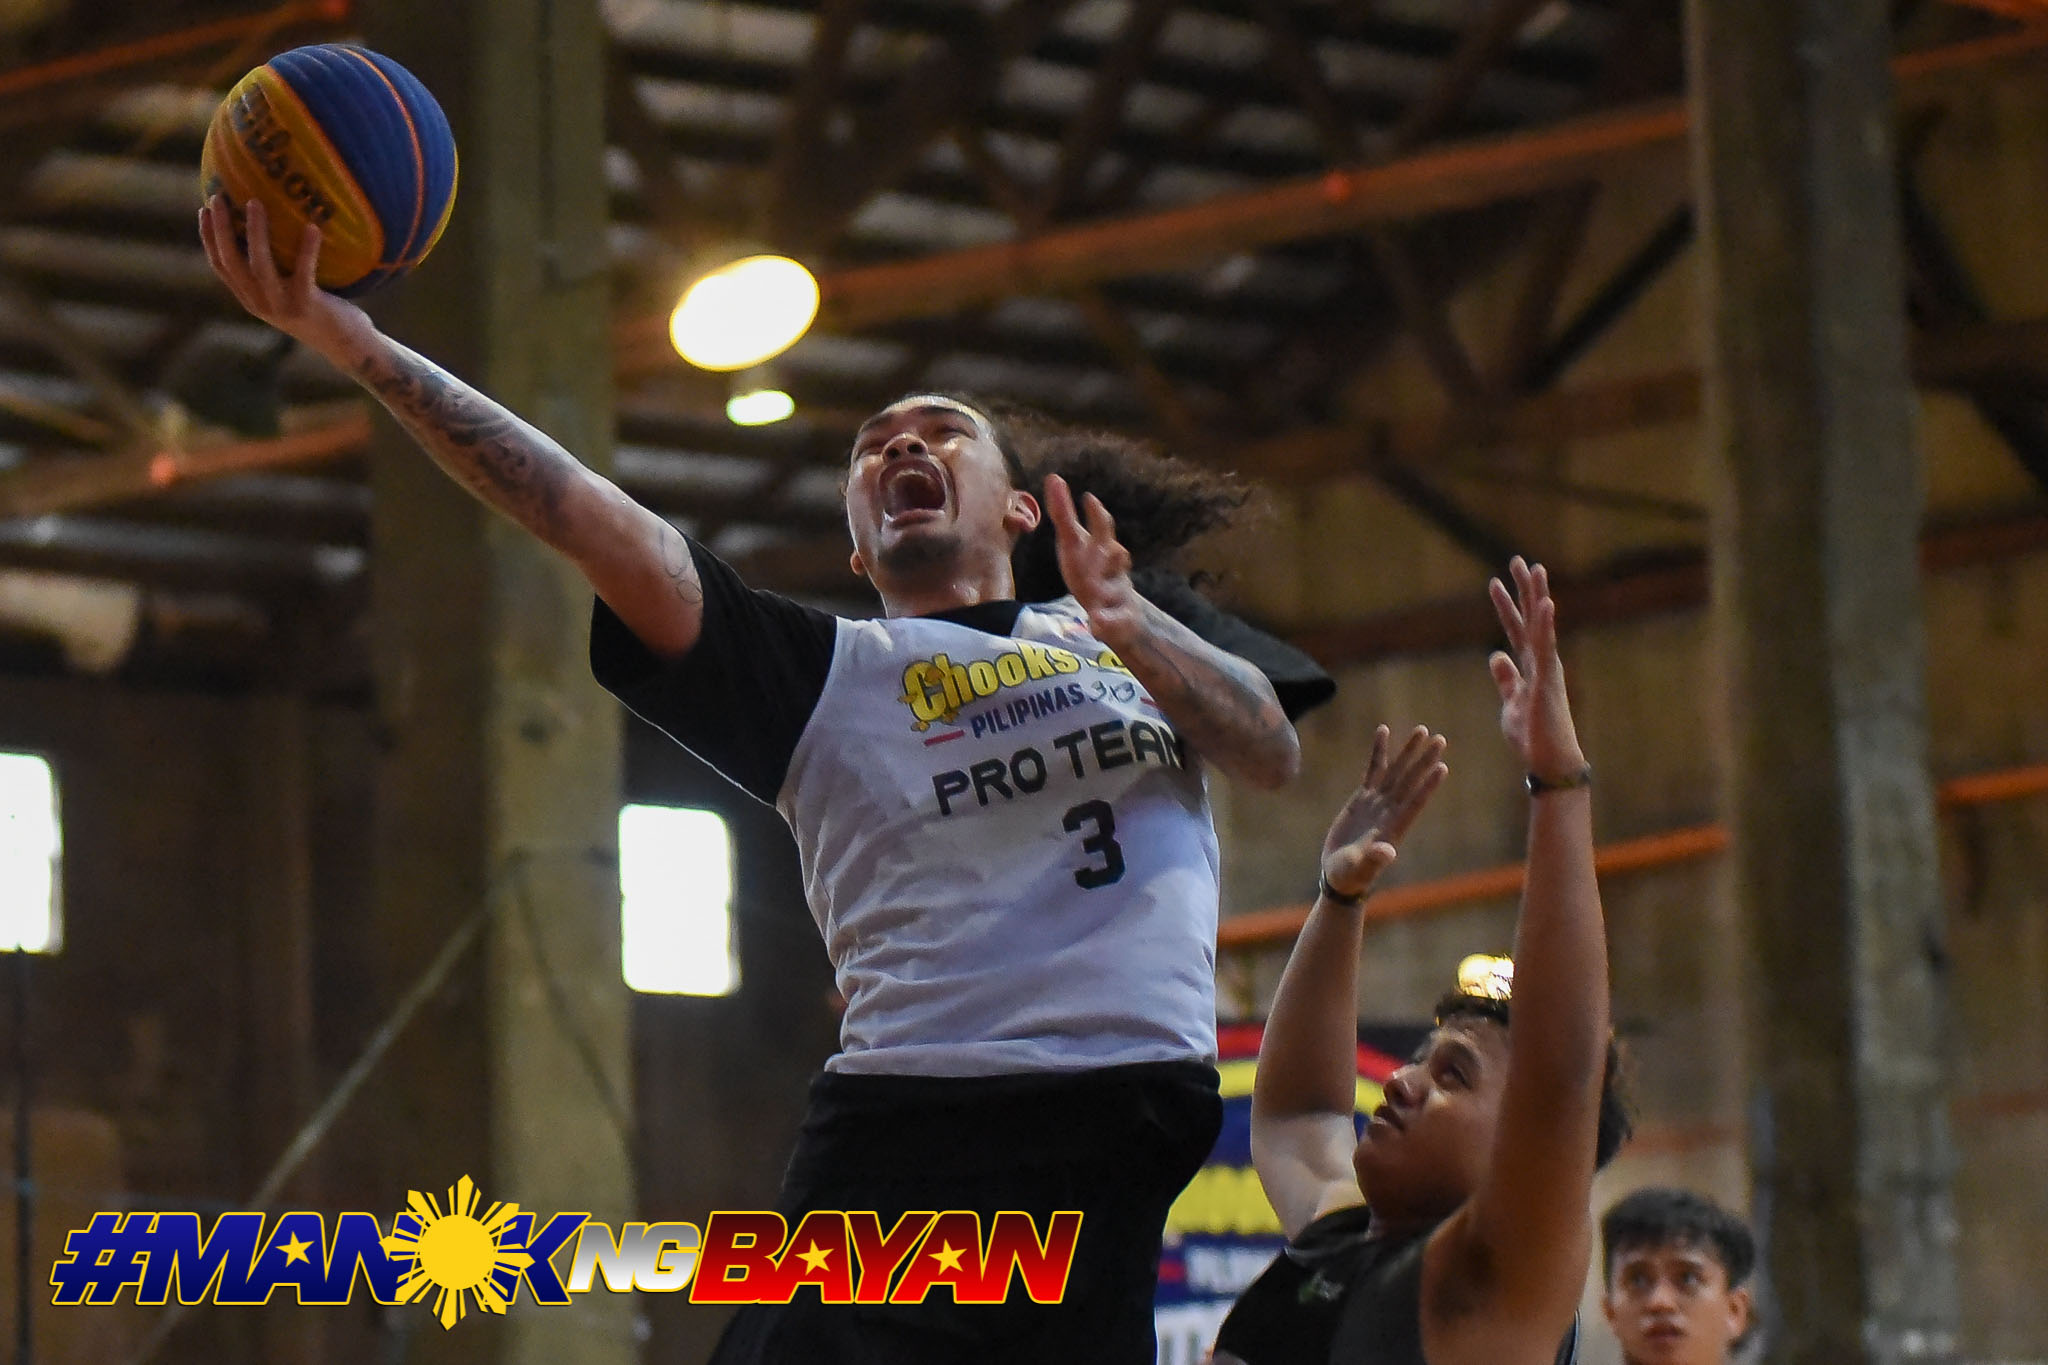 Tiebreaker Times Munzon torches Big Boss Cement-Porac, tows Pasig to MelMac Cup 4th leg 3x3 Basketball Chooks-to-Go Pilipinas 3x3 News  Troy Rike Ryan Monteclaro Pasig Chooks Joshua Munzon Franky Johnson Dylan Ababou Big Boss Cement-Porac Builders 2019 Chooks-to-Go Pilipinas 3x3 Season 2019 Chooks-to-Go Pilipinas 3x3 MelMac Cup